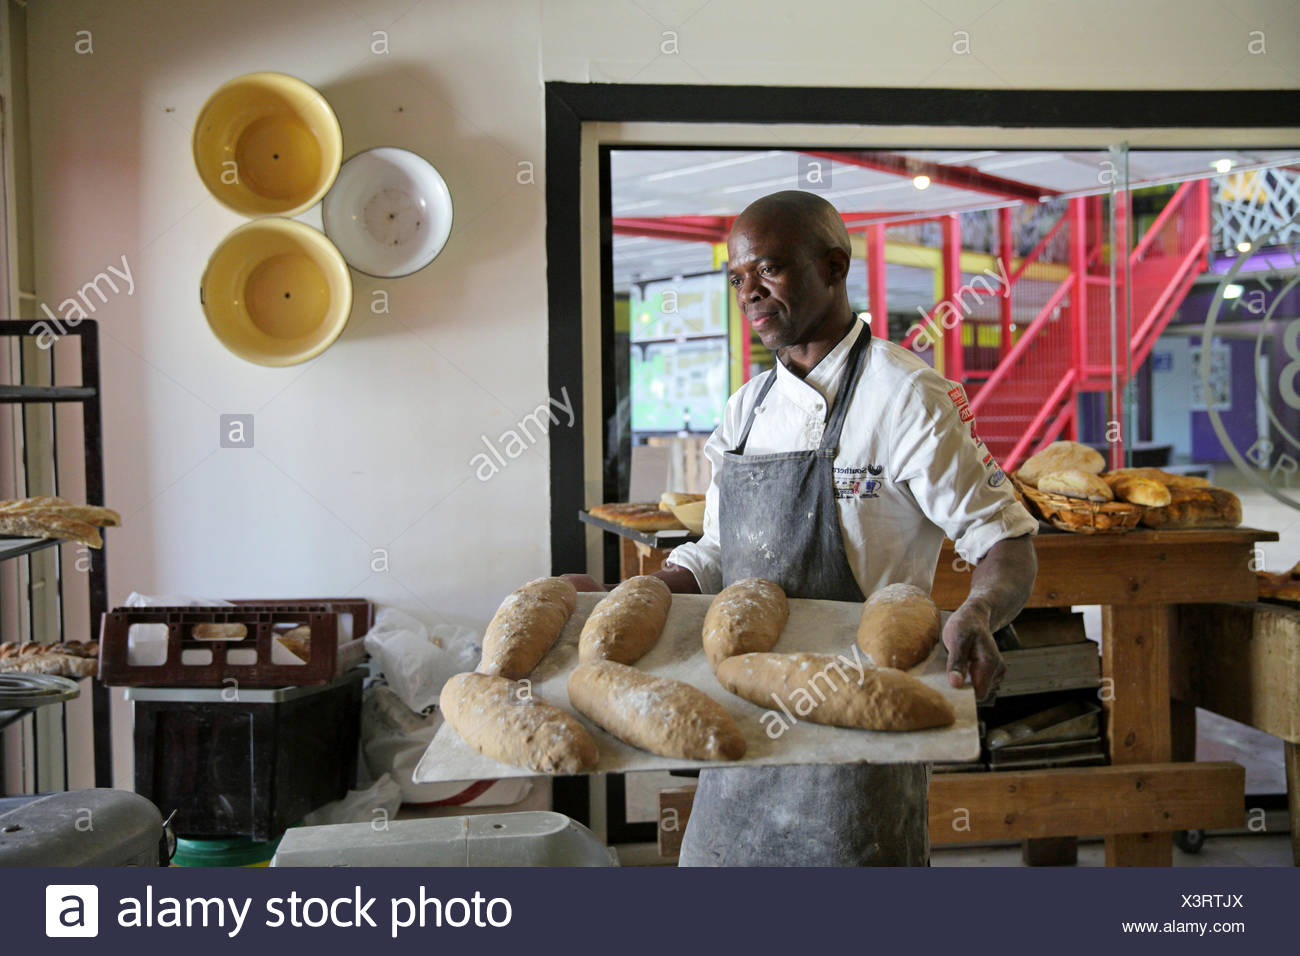 African baker carrying tray of loaves of bread in bakery - Stock Image